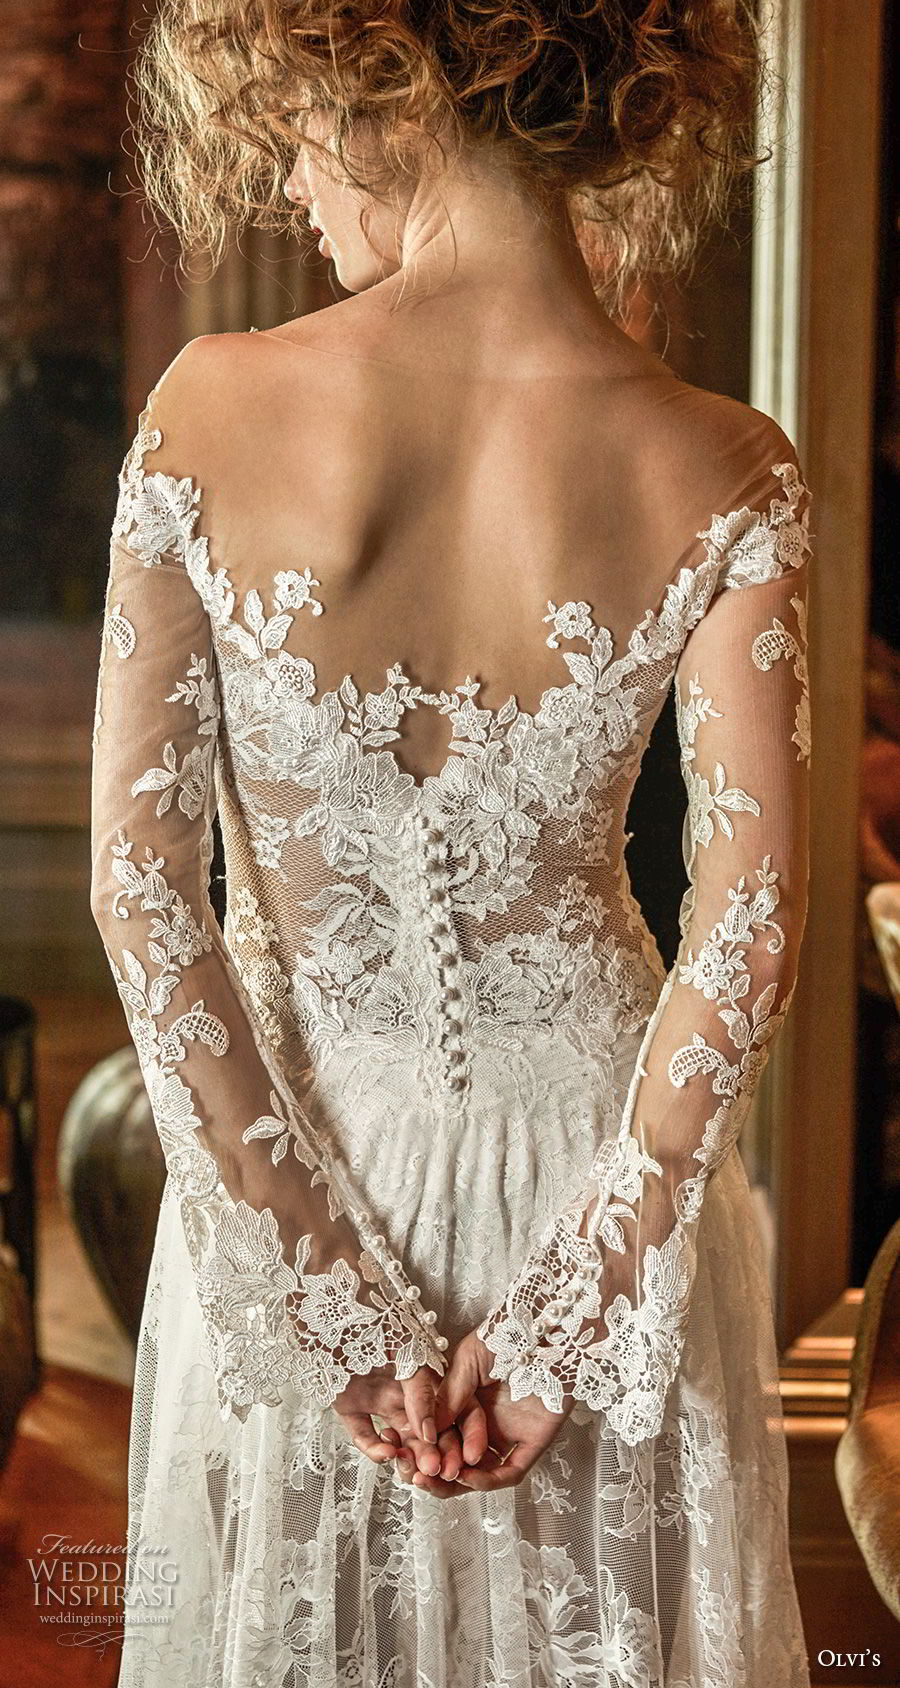 olvi 2019 bridal long bell sleeves full embellishment vintage soft a line wedding dress v back chapel train (20) zbv